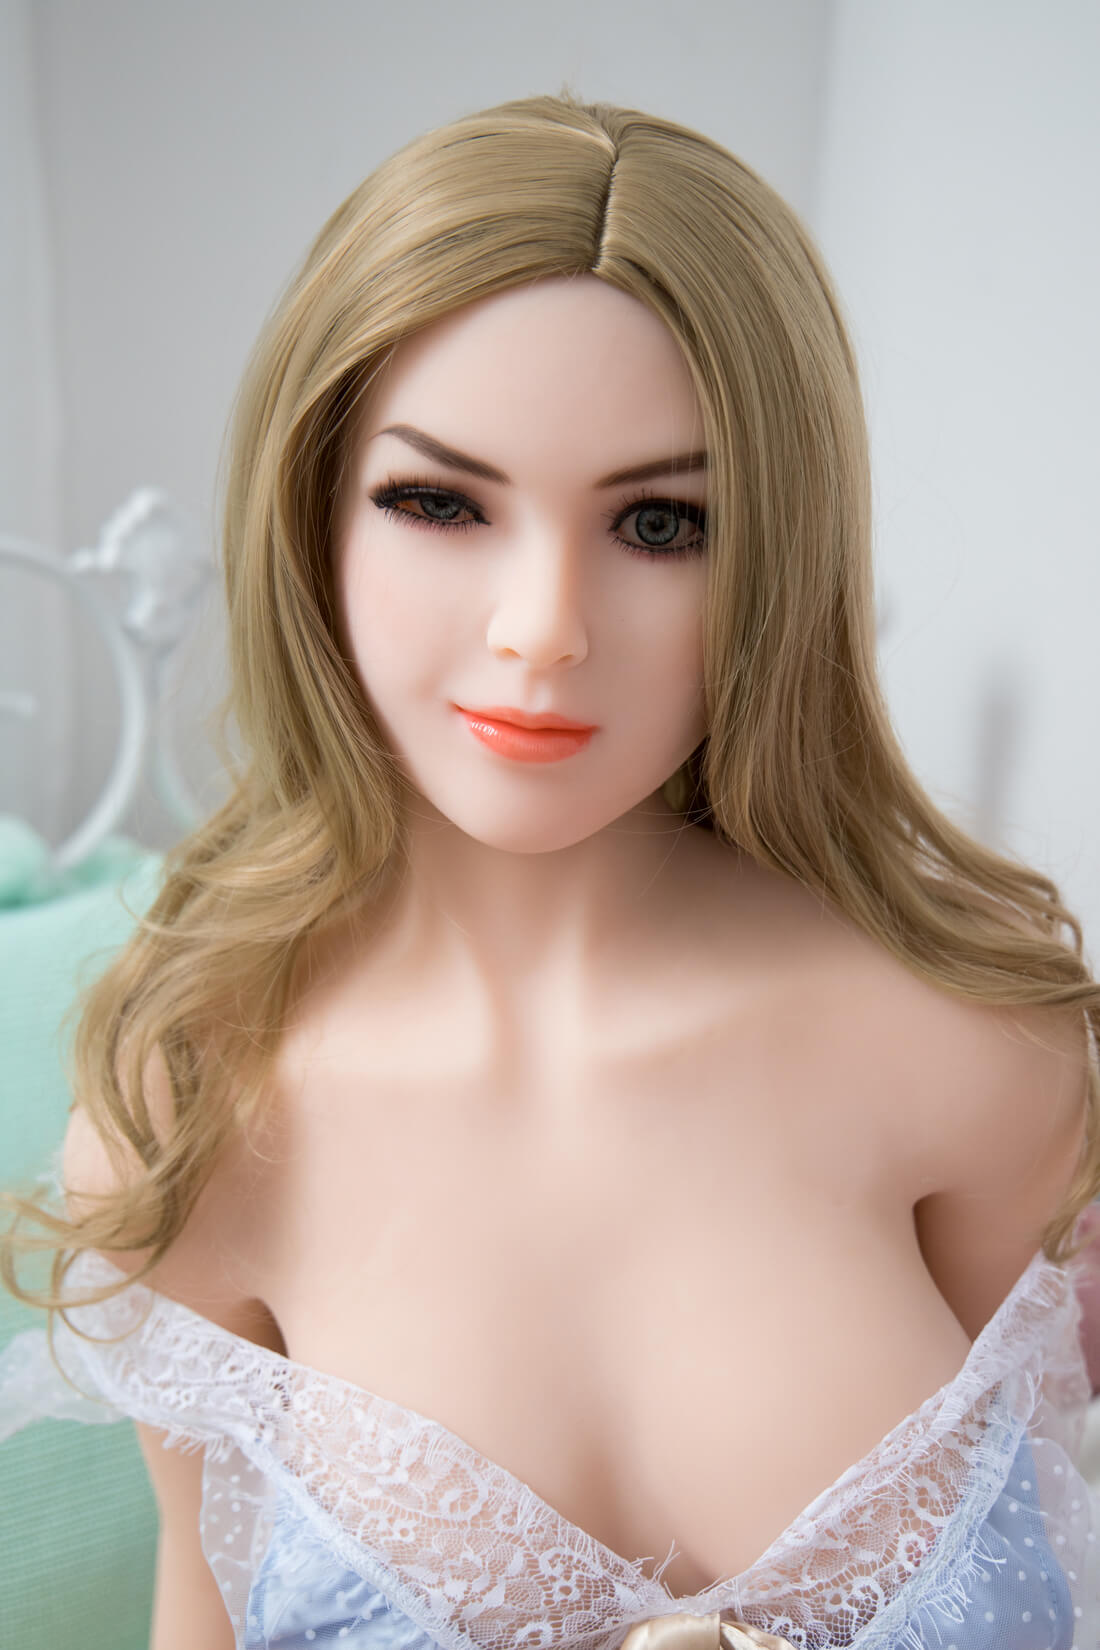 168cm (5 ft 5 in) AI Robot Sex Doll - Calithea